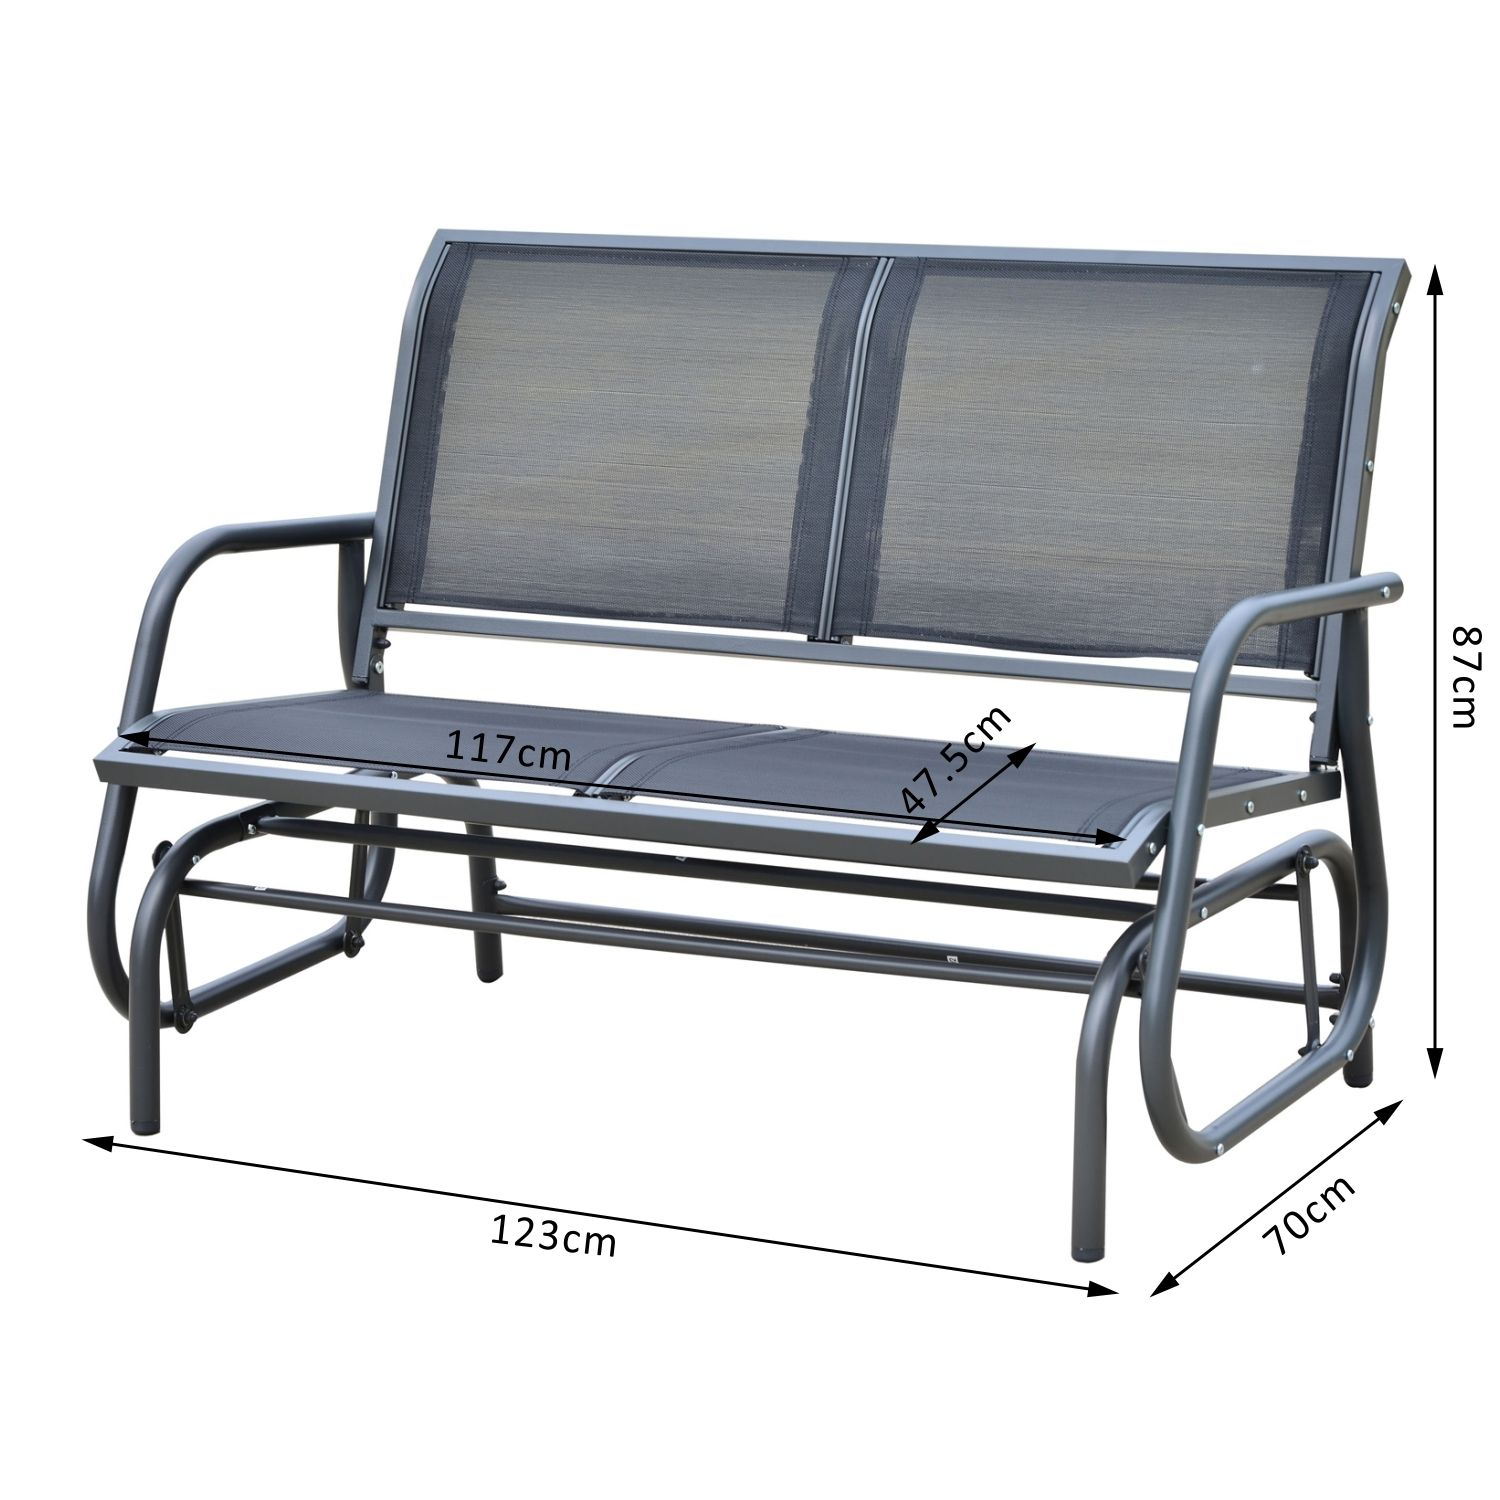 glider progressive leisure furniture patio loveseat bench products outdoor garden rocking prairie design